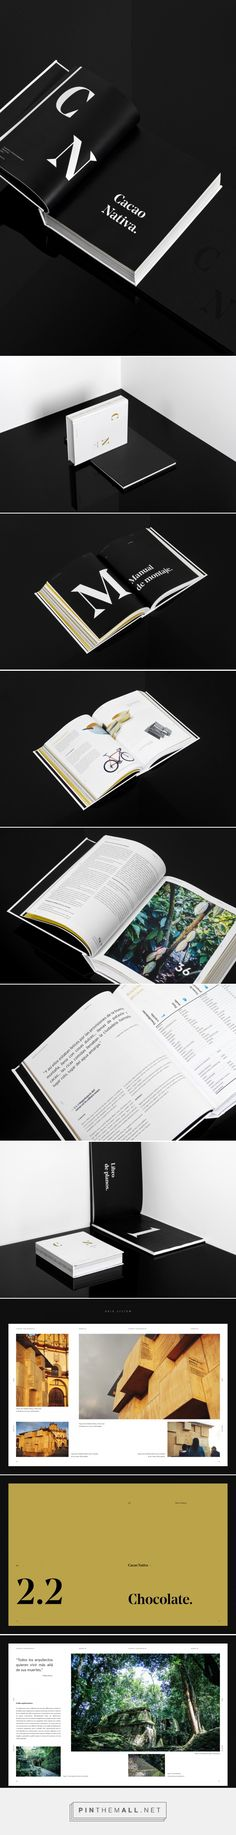 Cacao Nativa Book on Behance - created via https://pinthemall.net